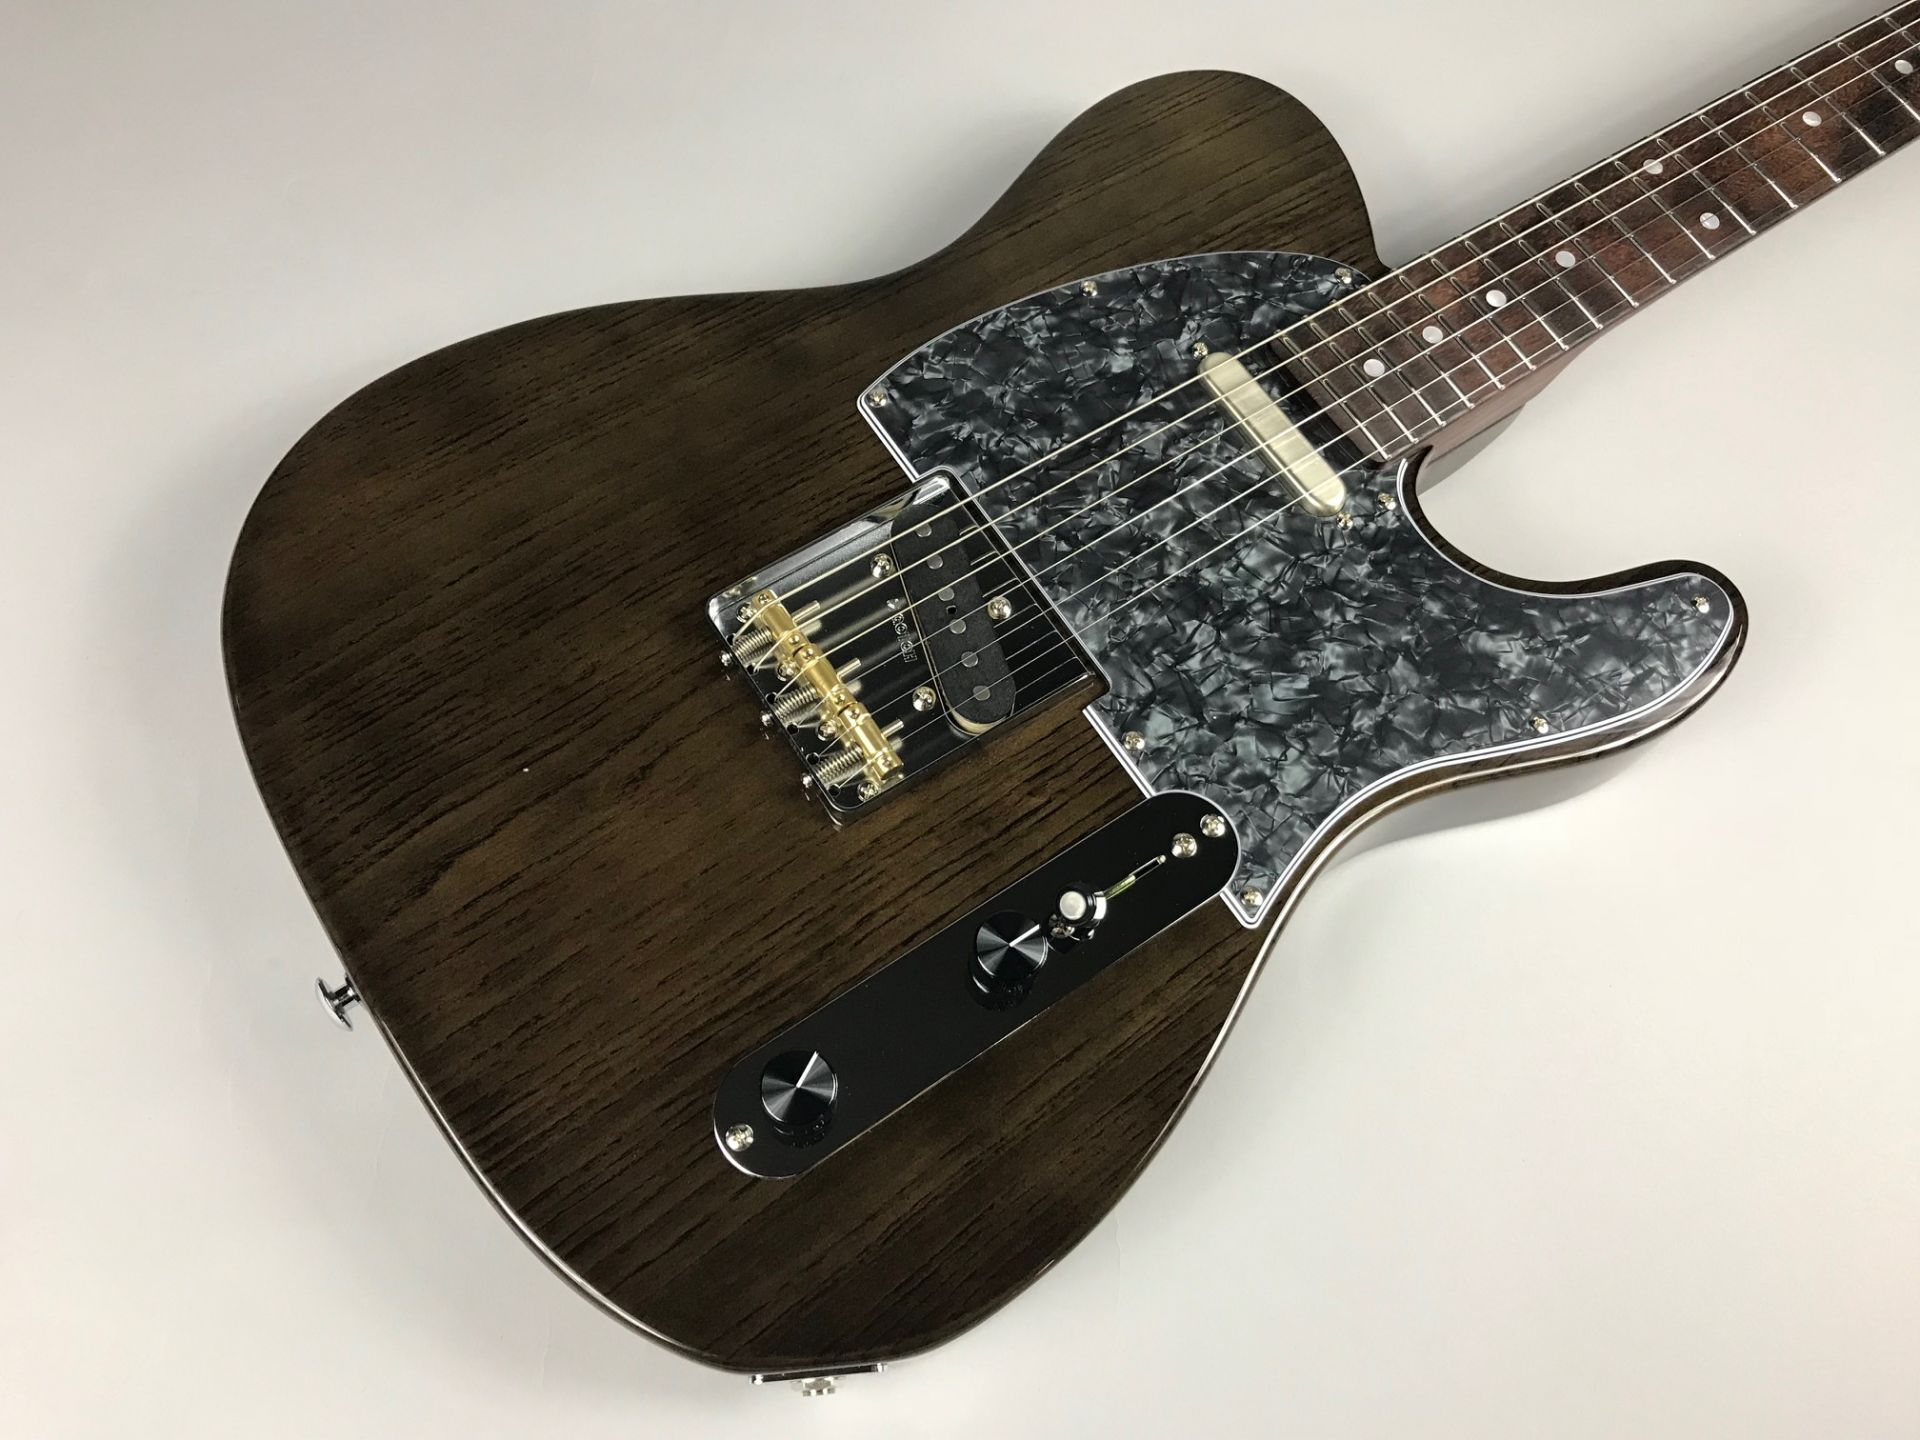 Black Cloud DELTA CustomMade D-1 ローズネック 写真画像